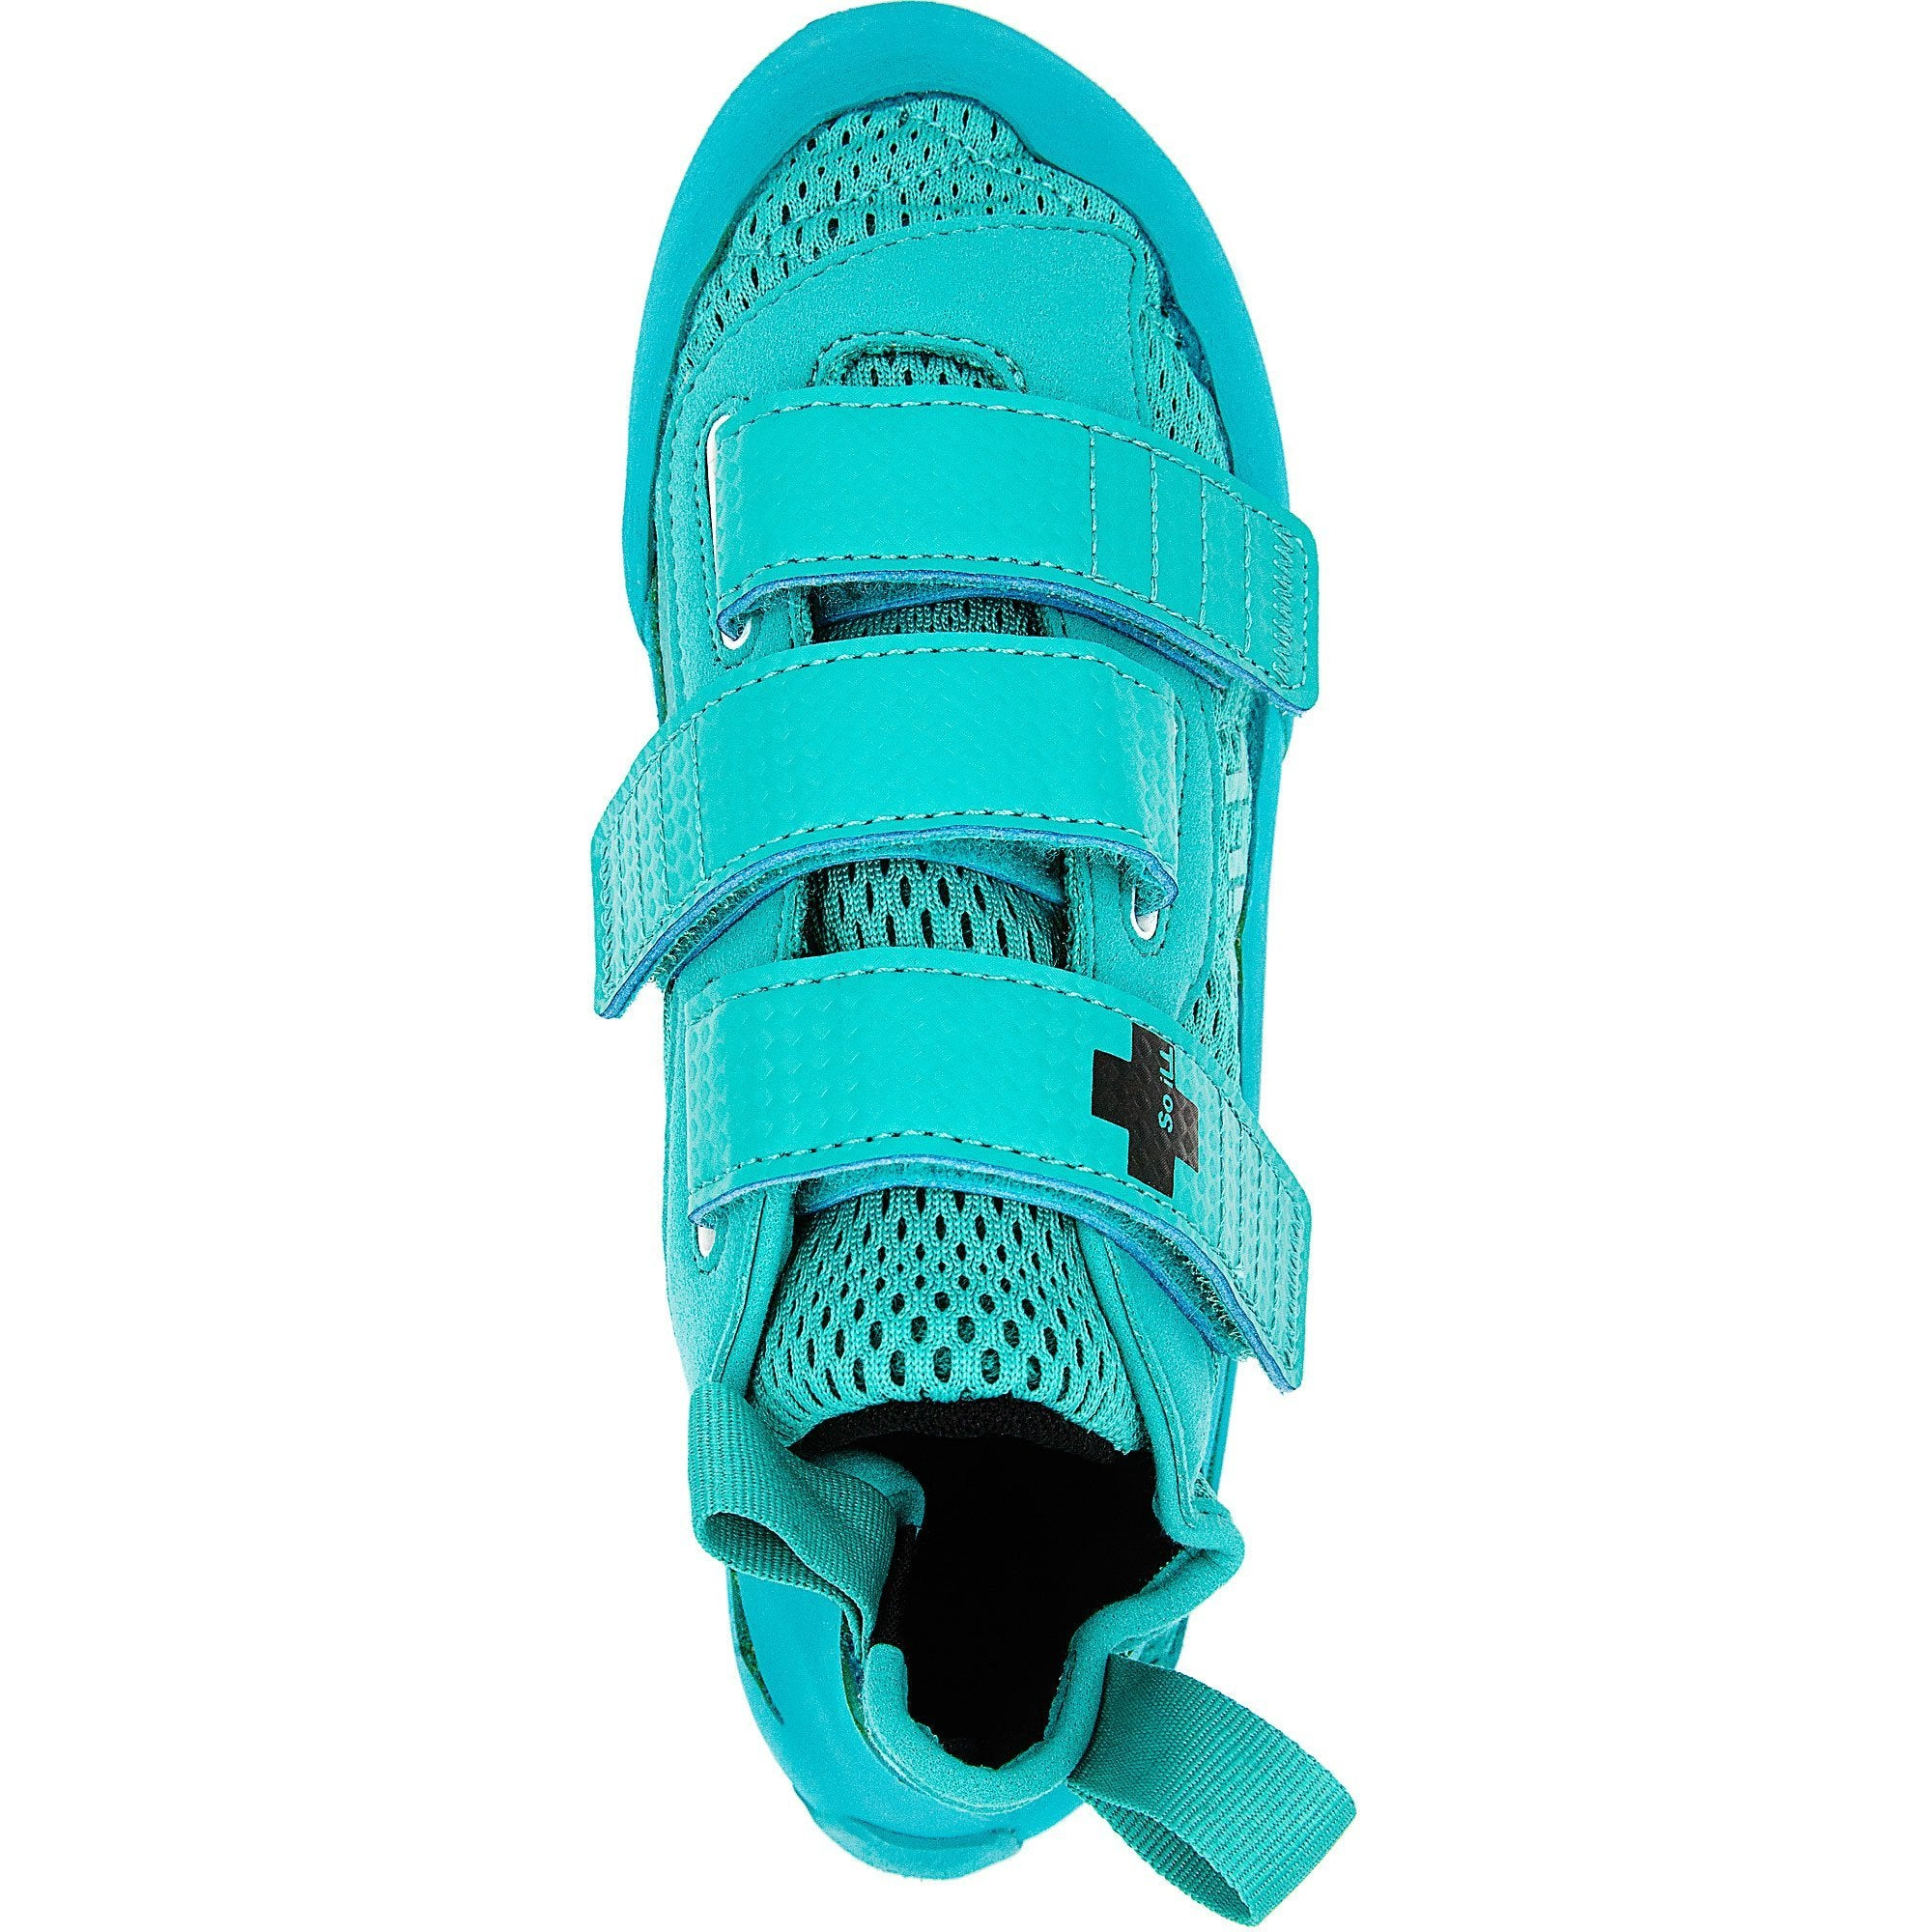 So iLL Runner Rock Climbing Shoe in Teal – Top View